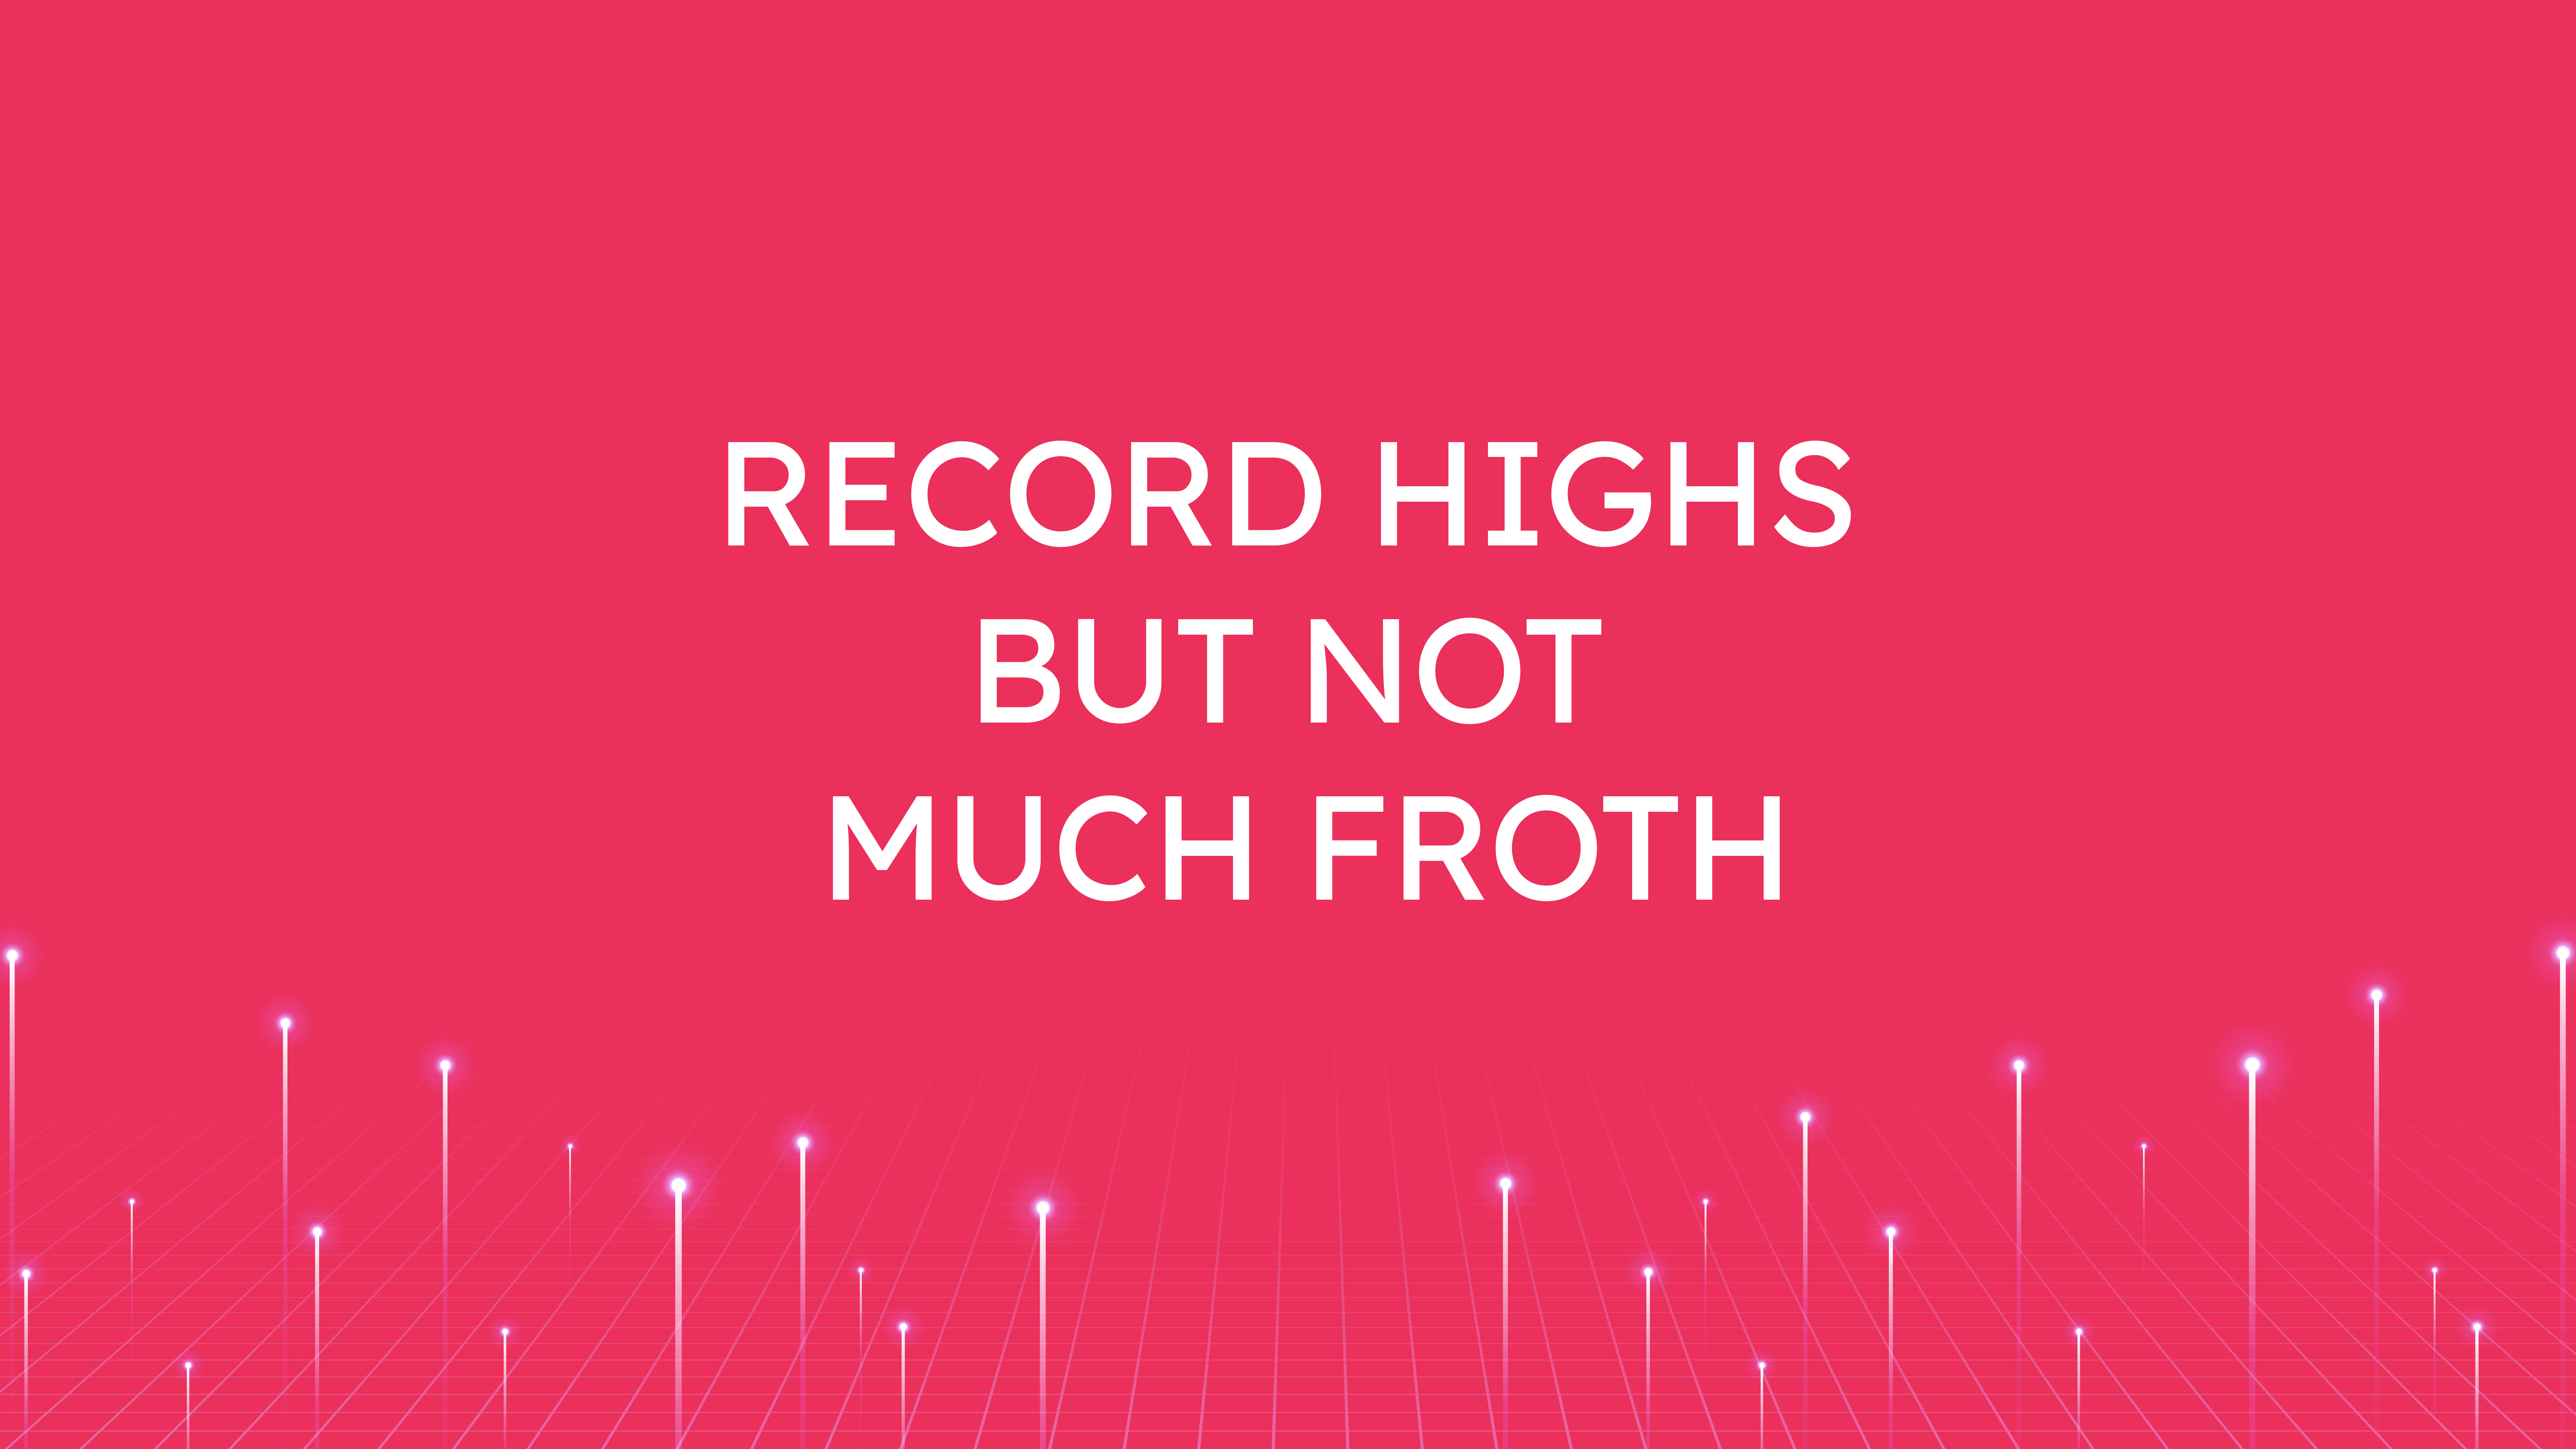 Record Highs but  Not Much Froth